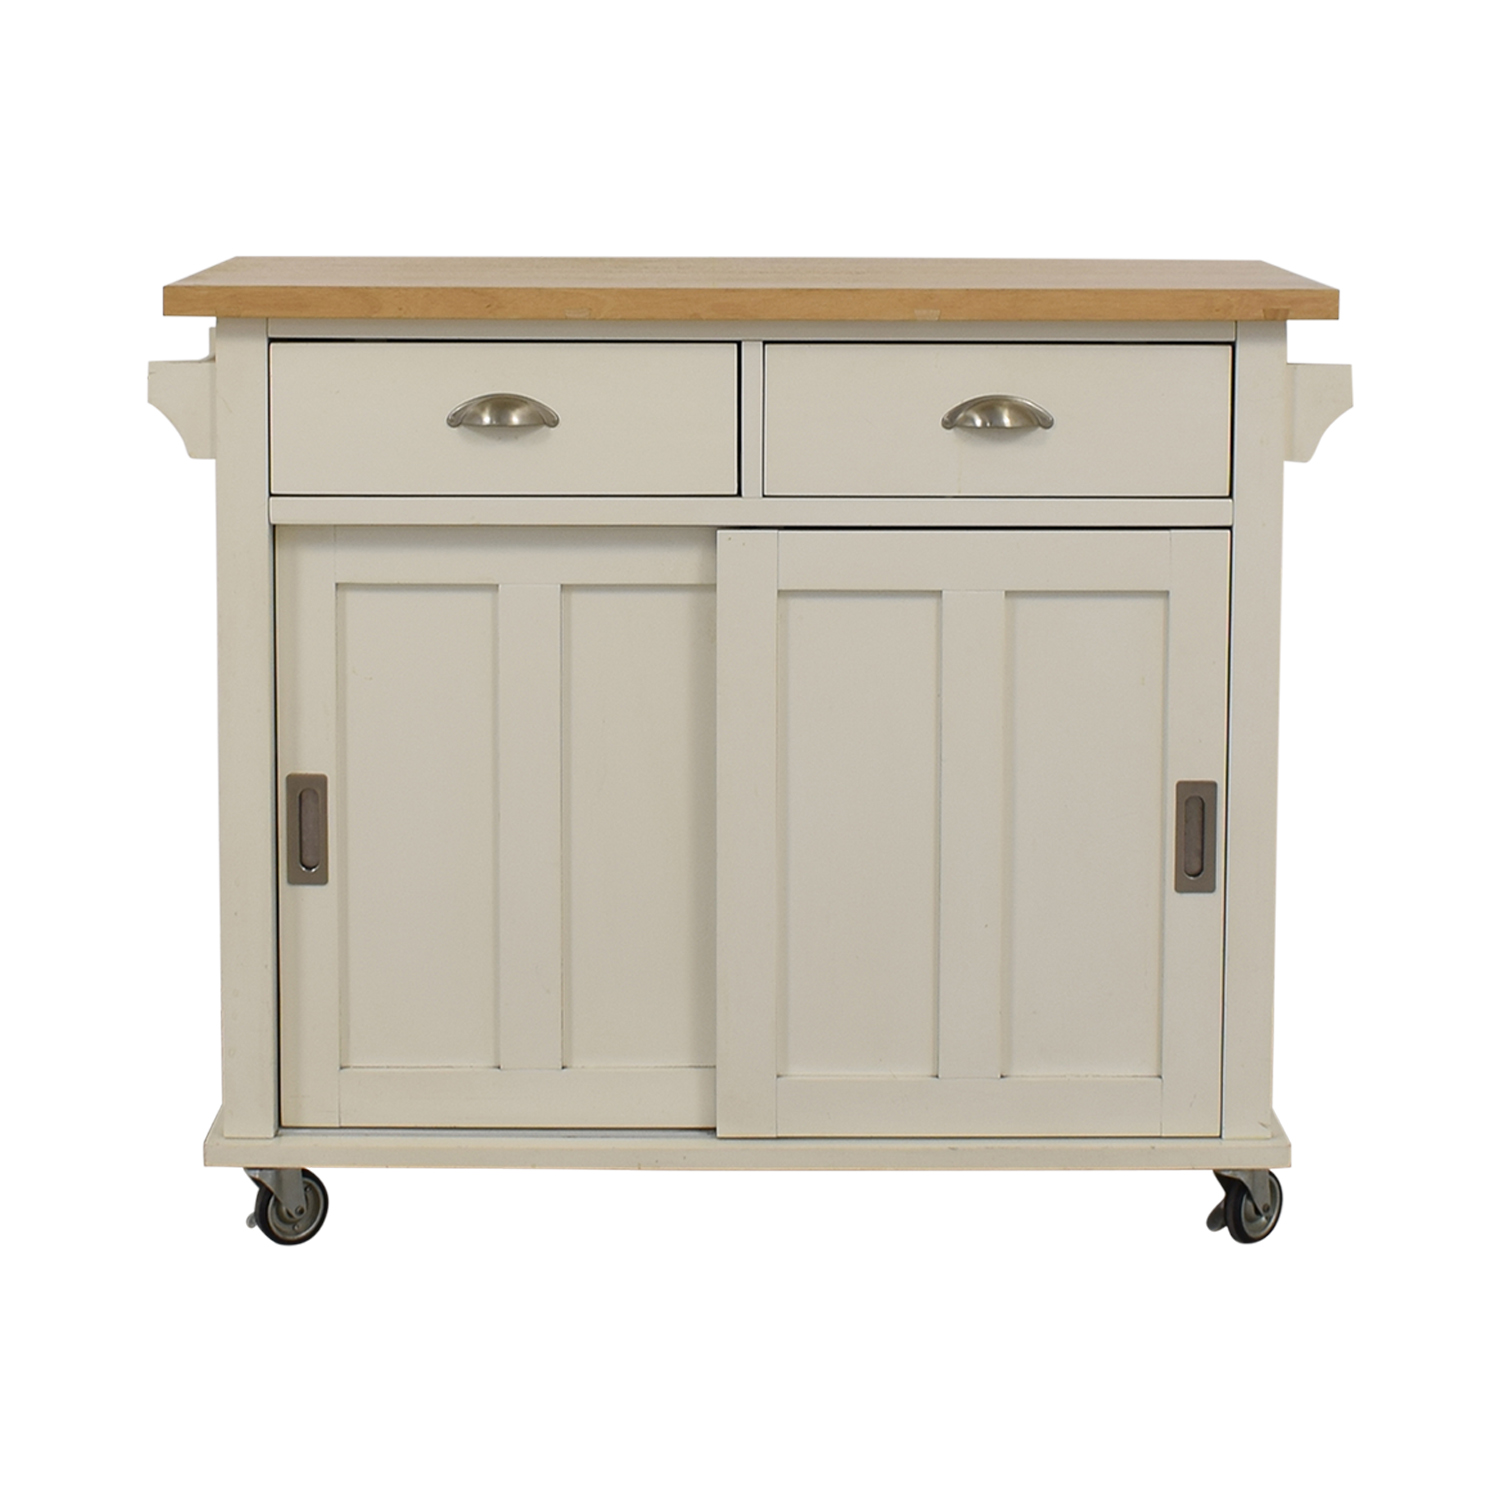 Crate & Barrel Crate & Barrel Belmont White